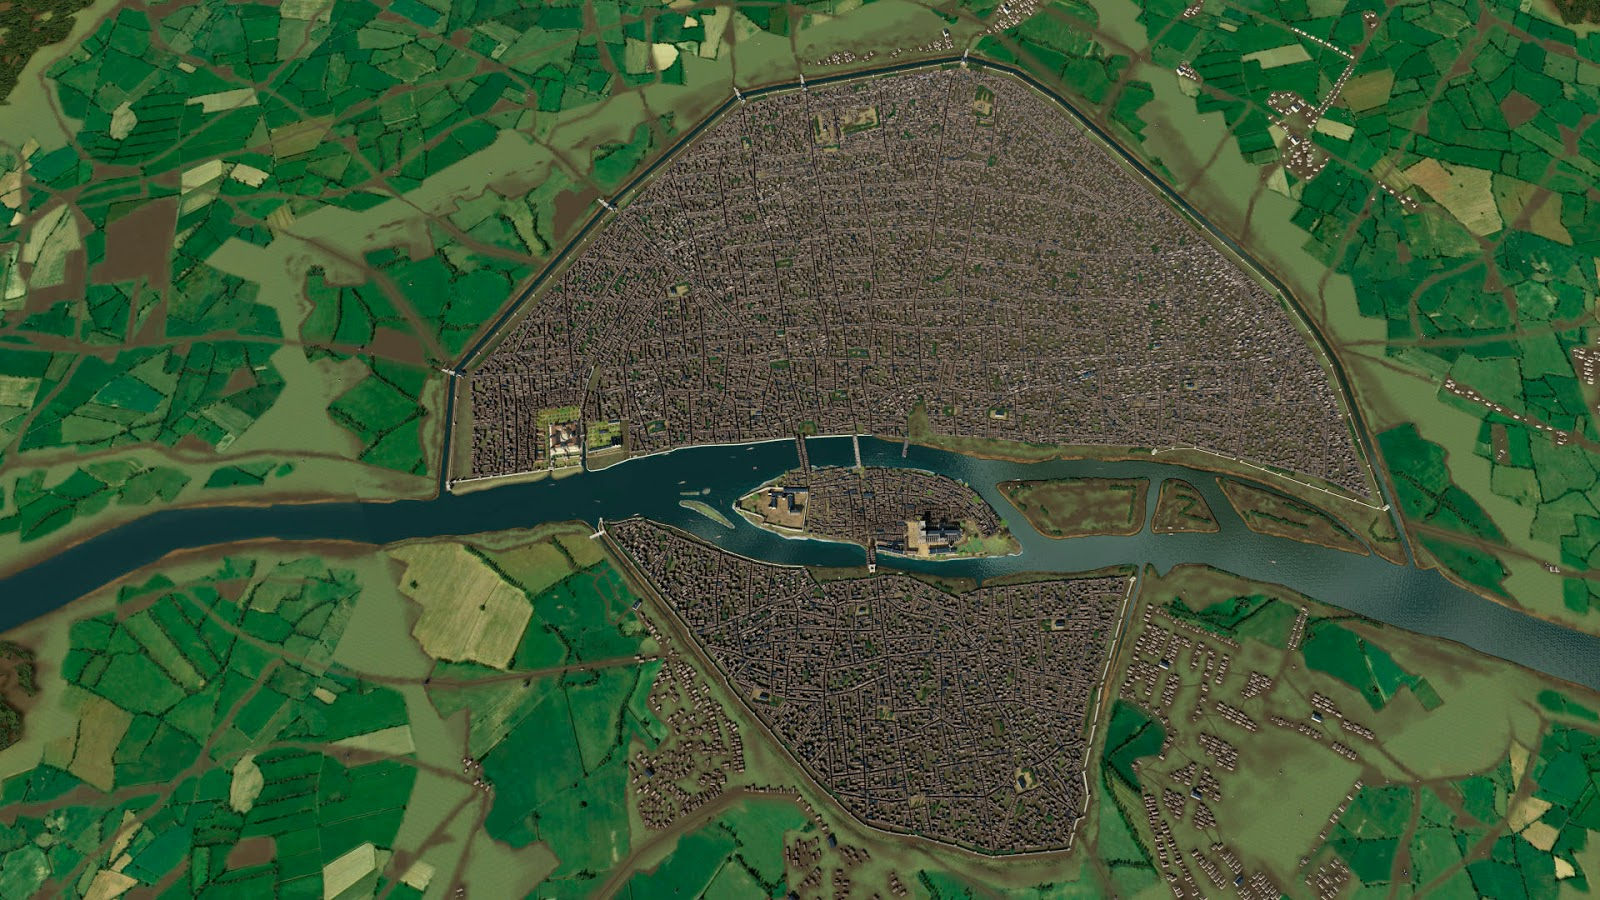 Overhead map from a 3D reconstruction of medieval Paris